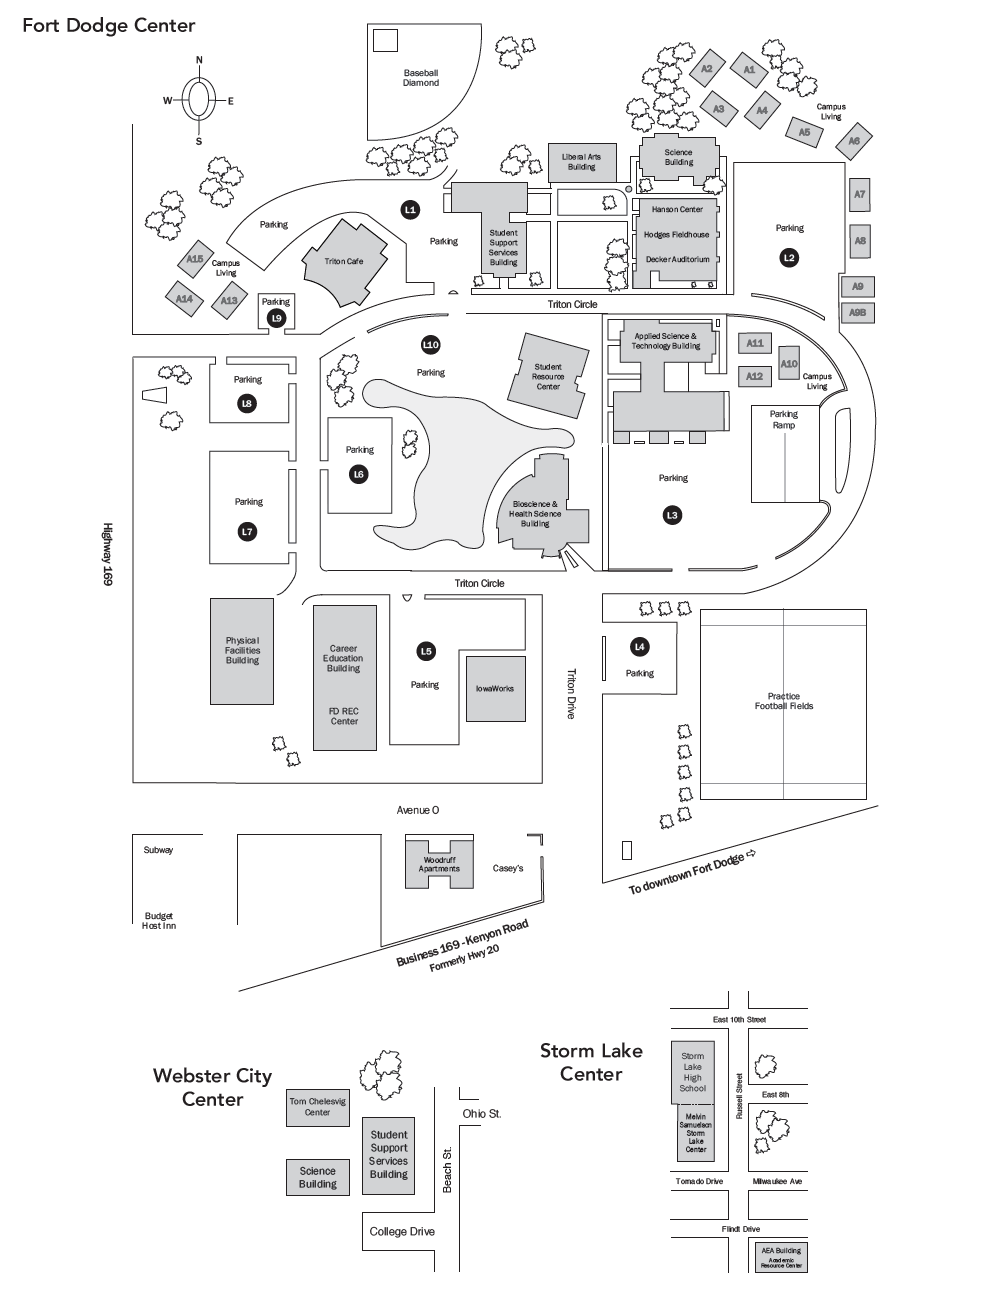 kenyon college campus map Campus Map Iowa Central Community College Acalog Acms kenyon college campus map